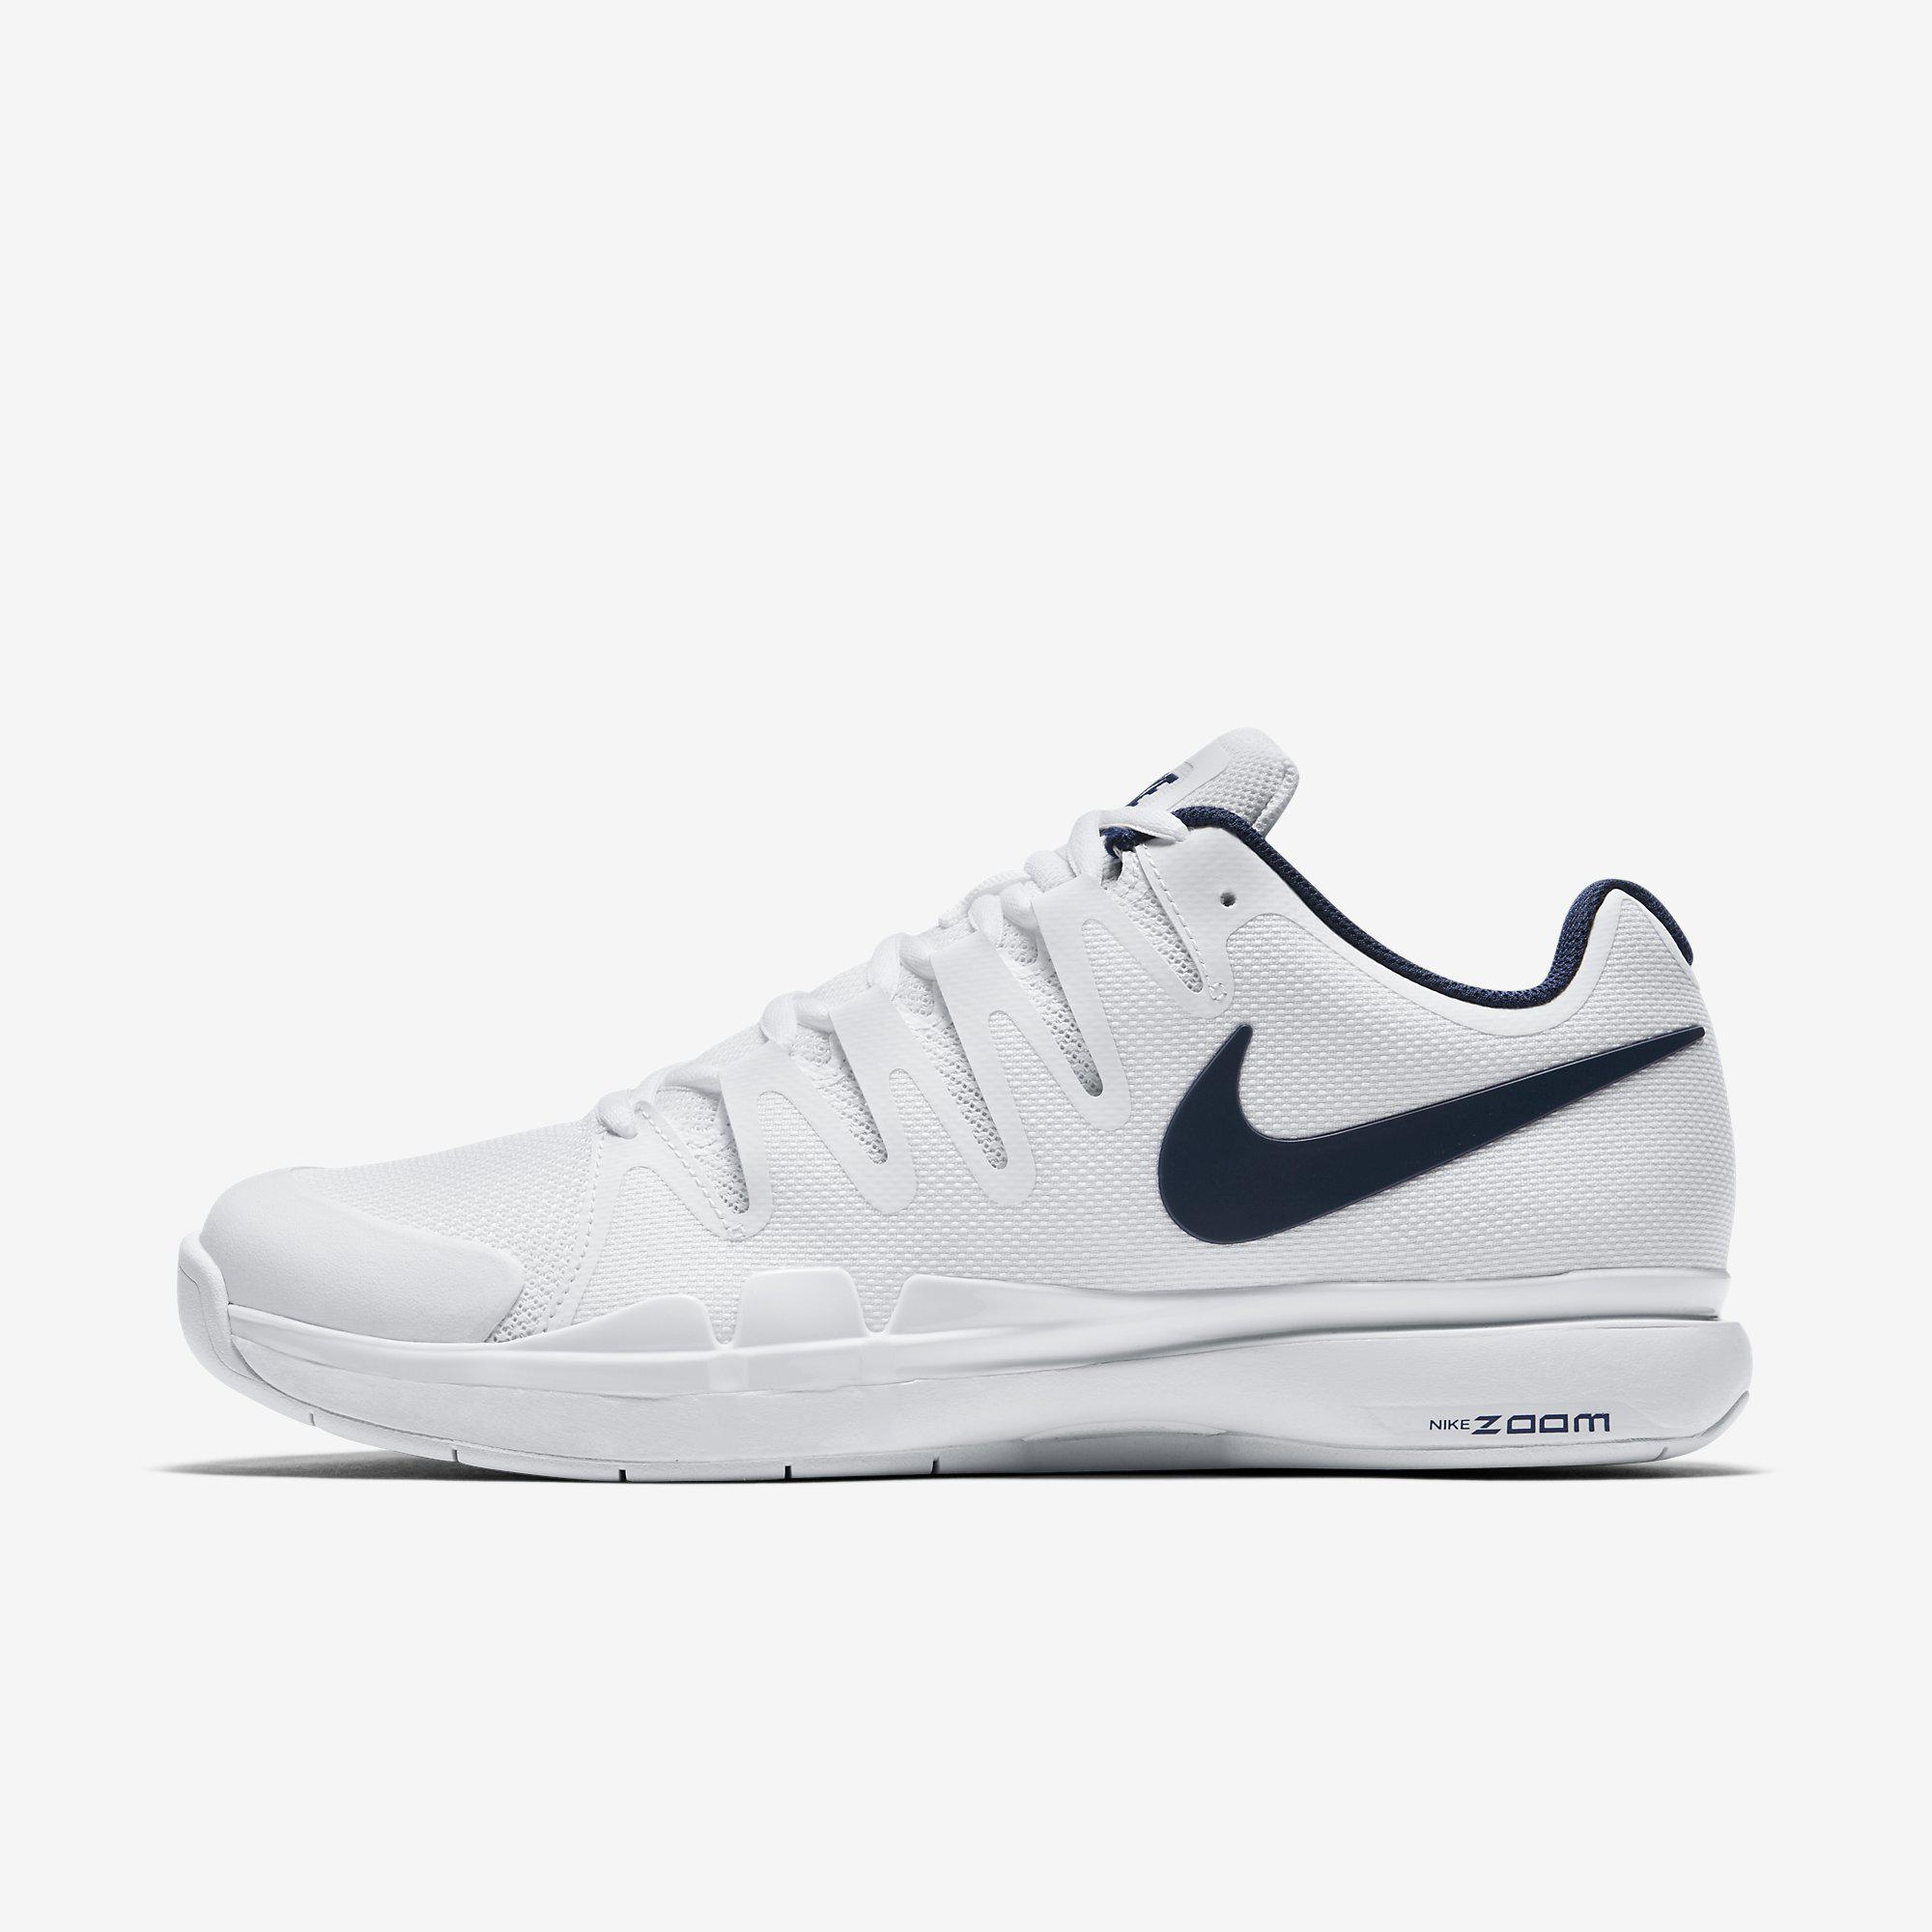 61b1cfb3a5714 Nike Mens Court Zoom Vapor 9.5 Tour Carpet Tennis Shoes - White Binary Blue  - Tennisnuts.com